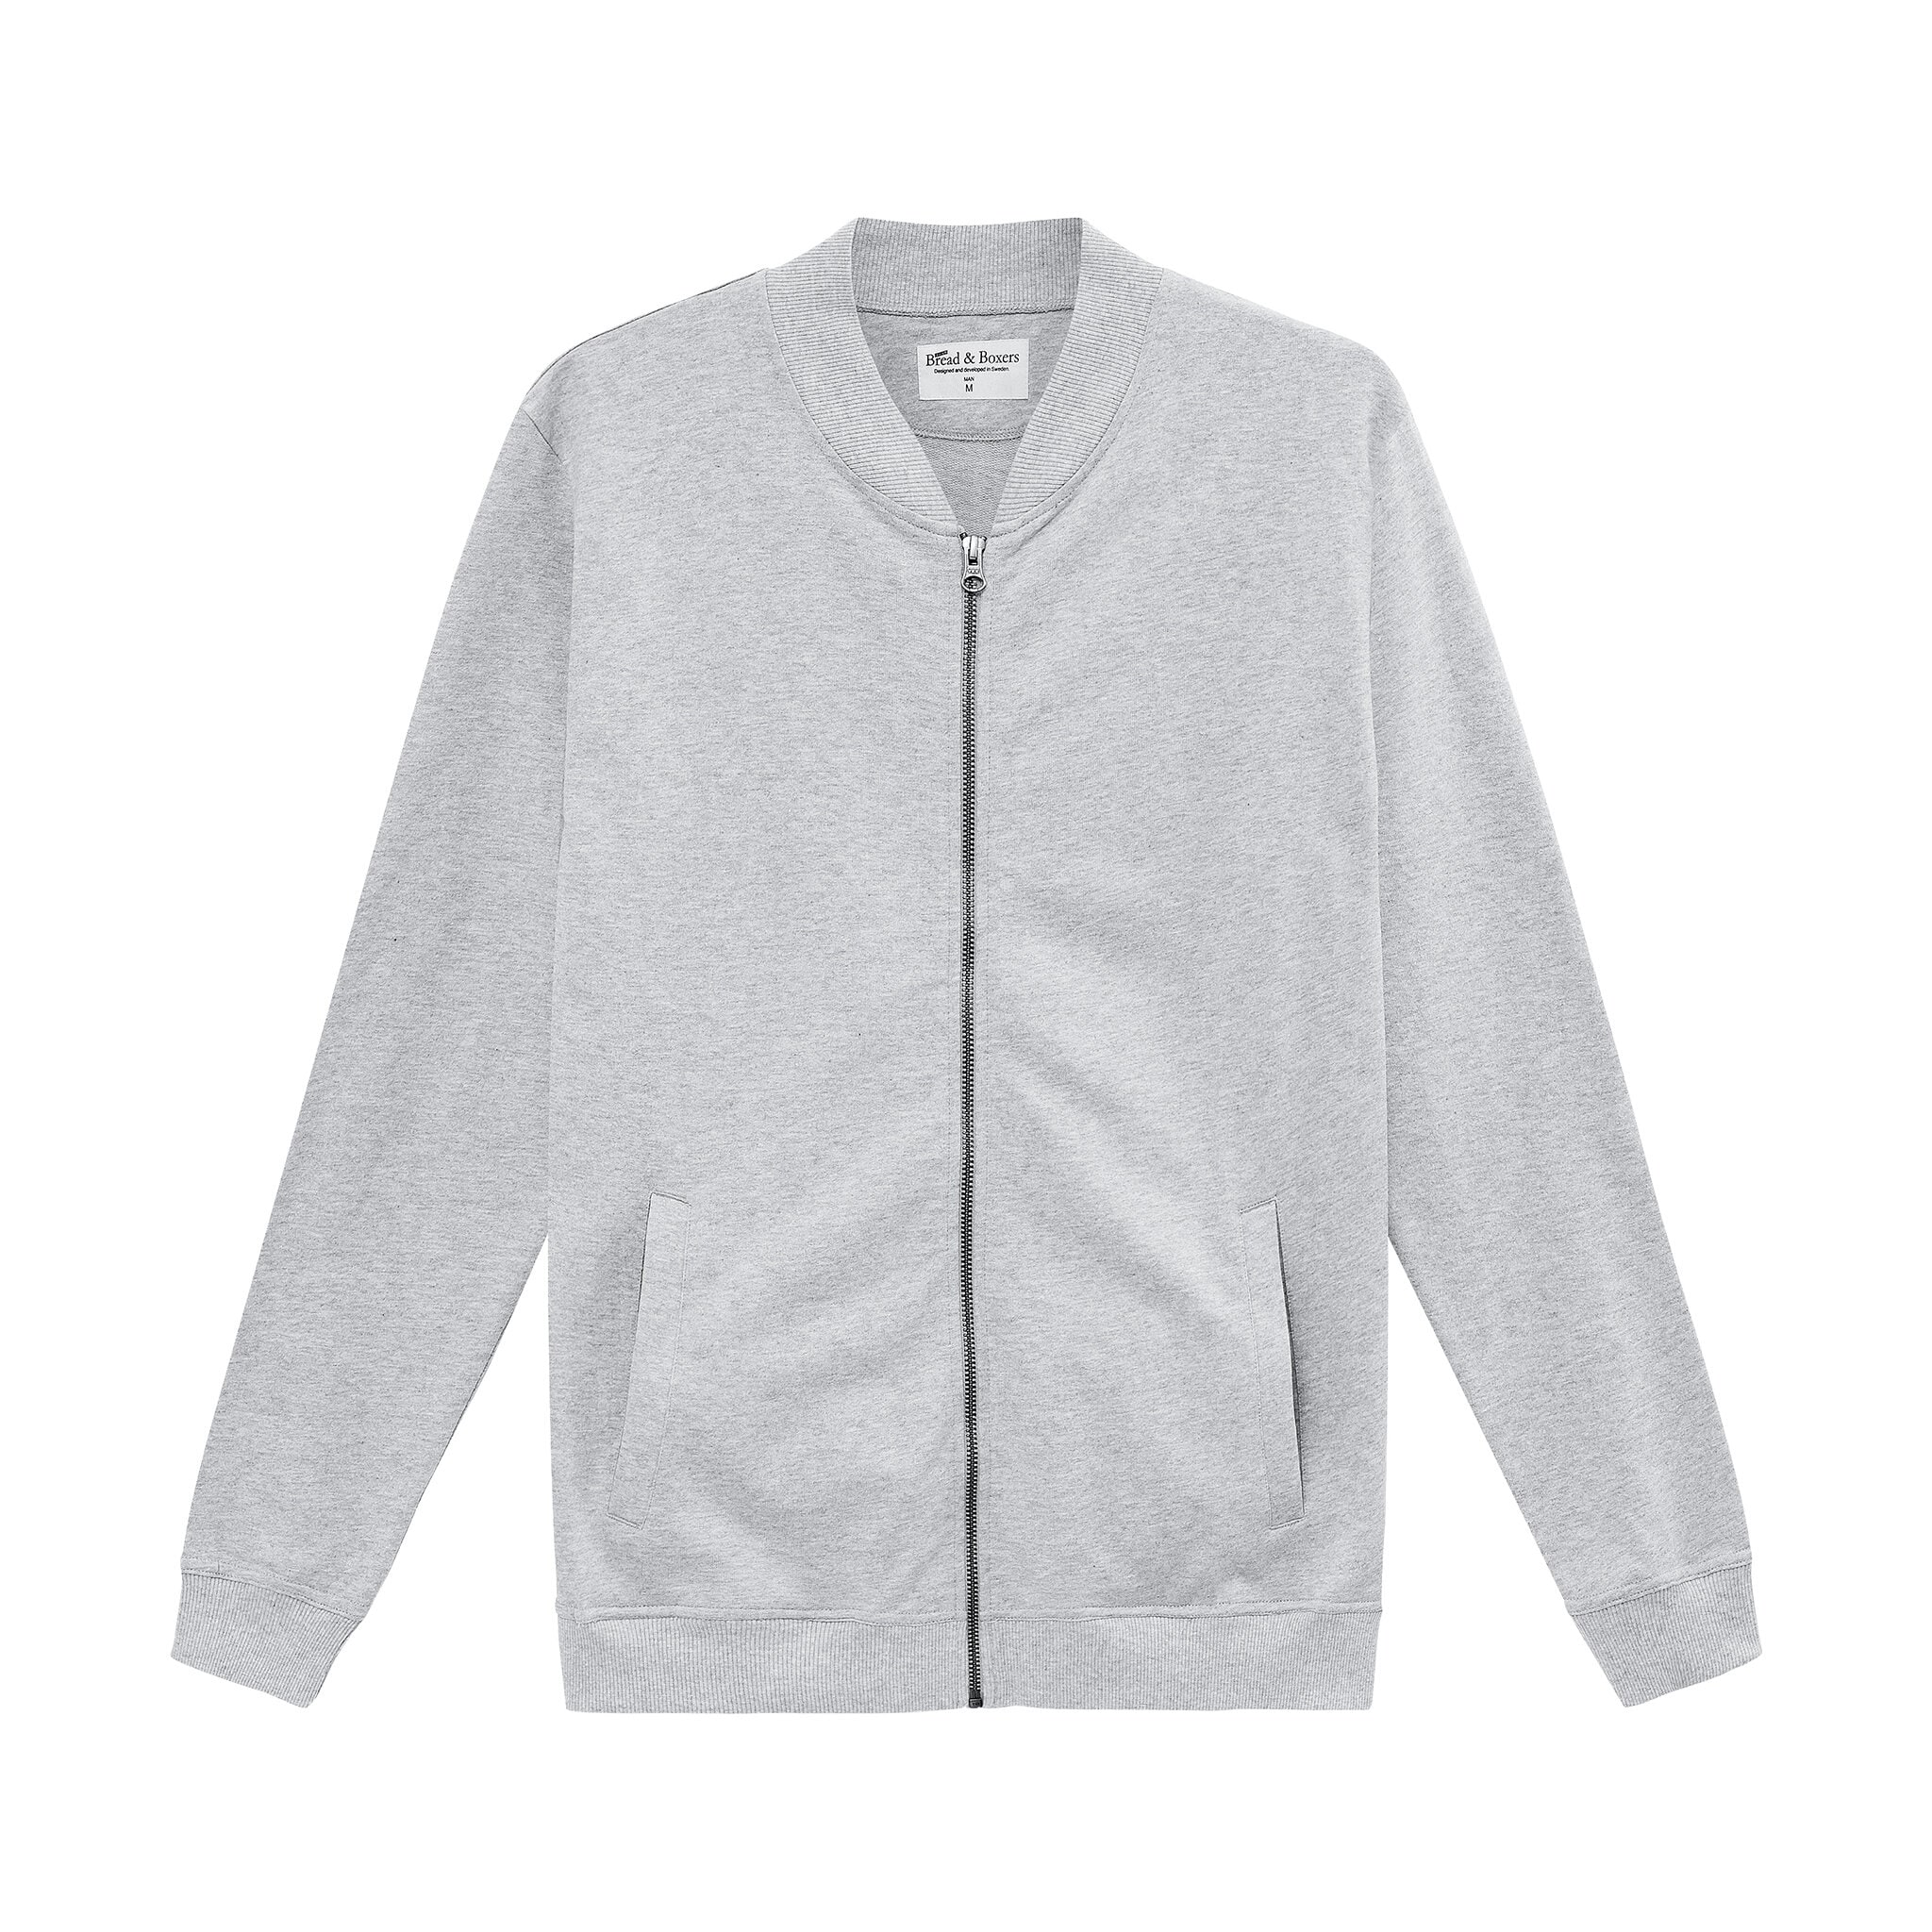 416203_Man_Jersey Jacket_grey-melange